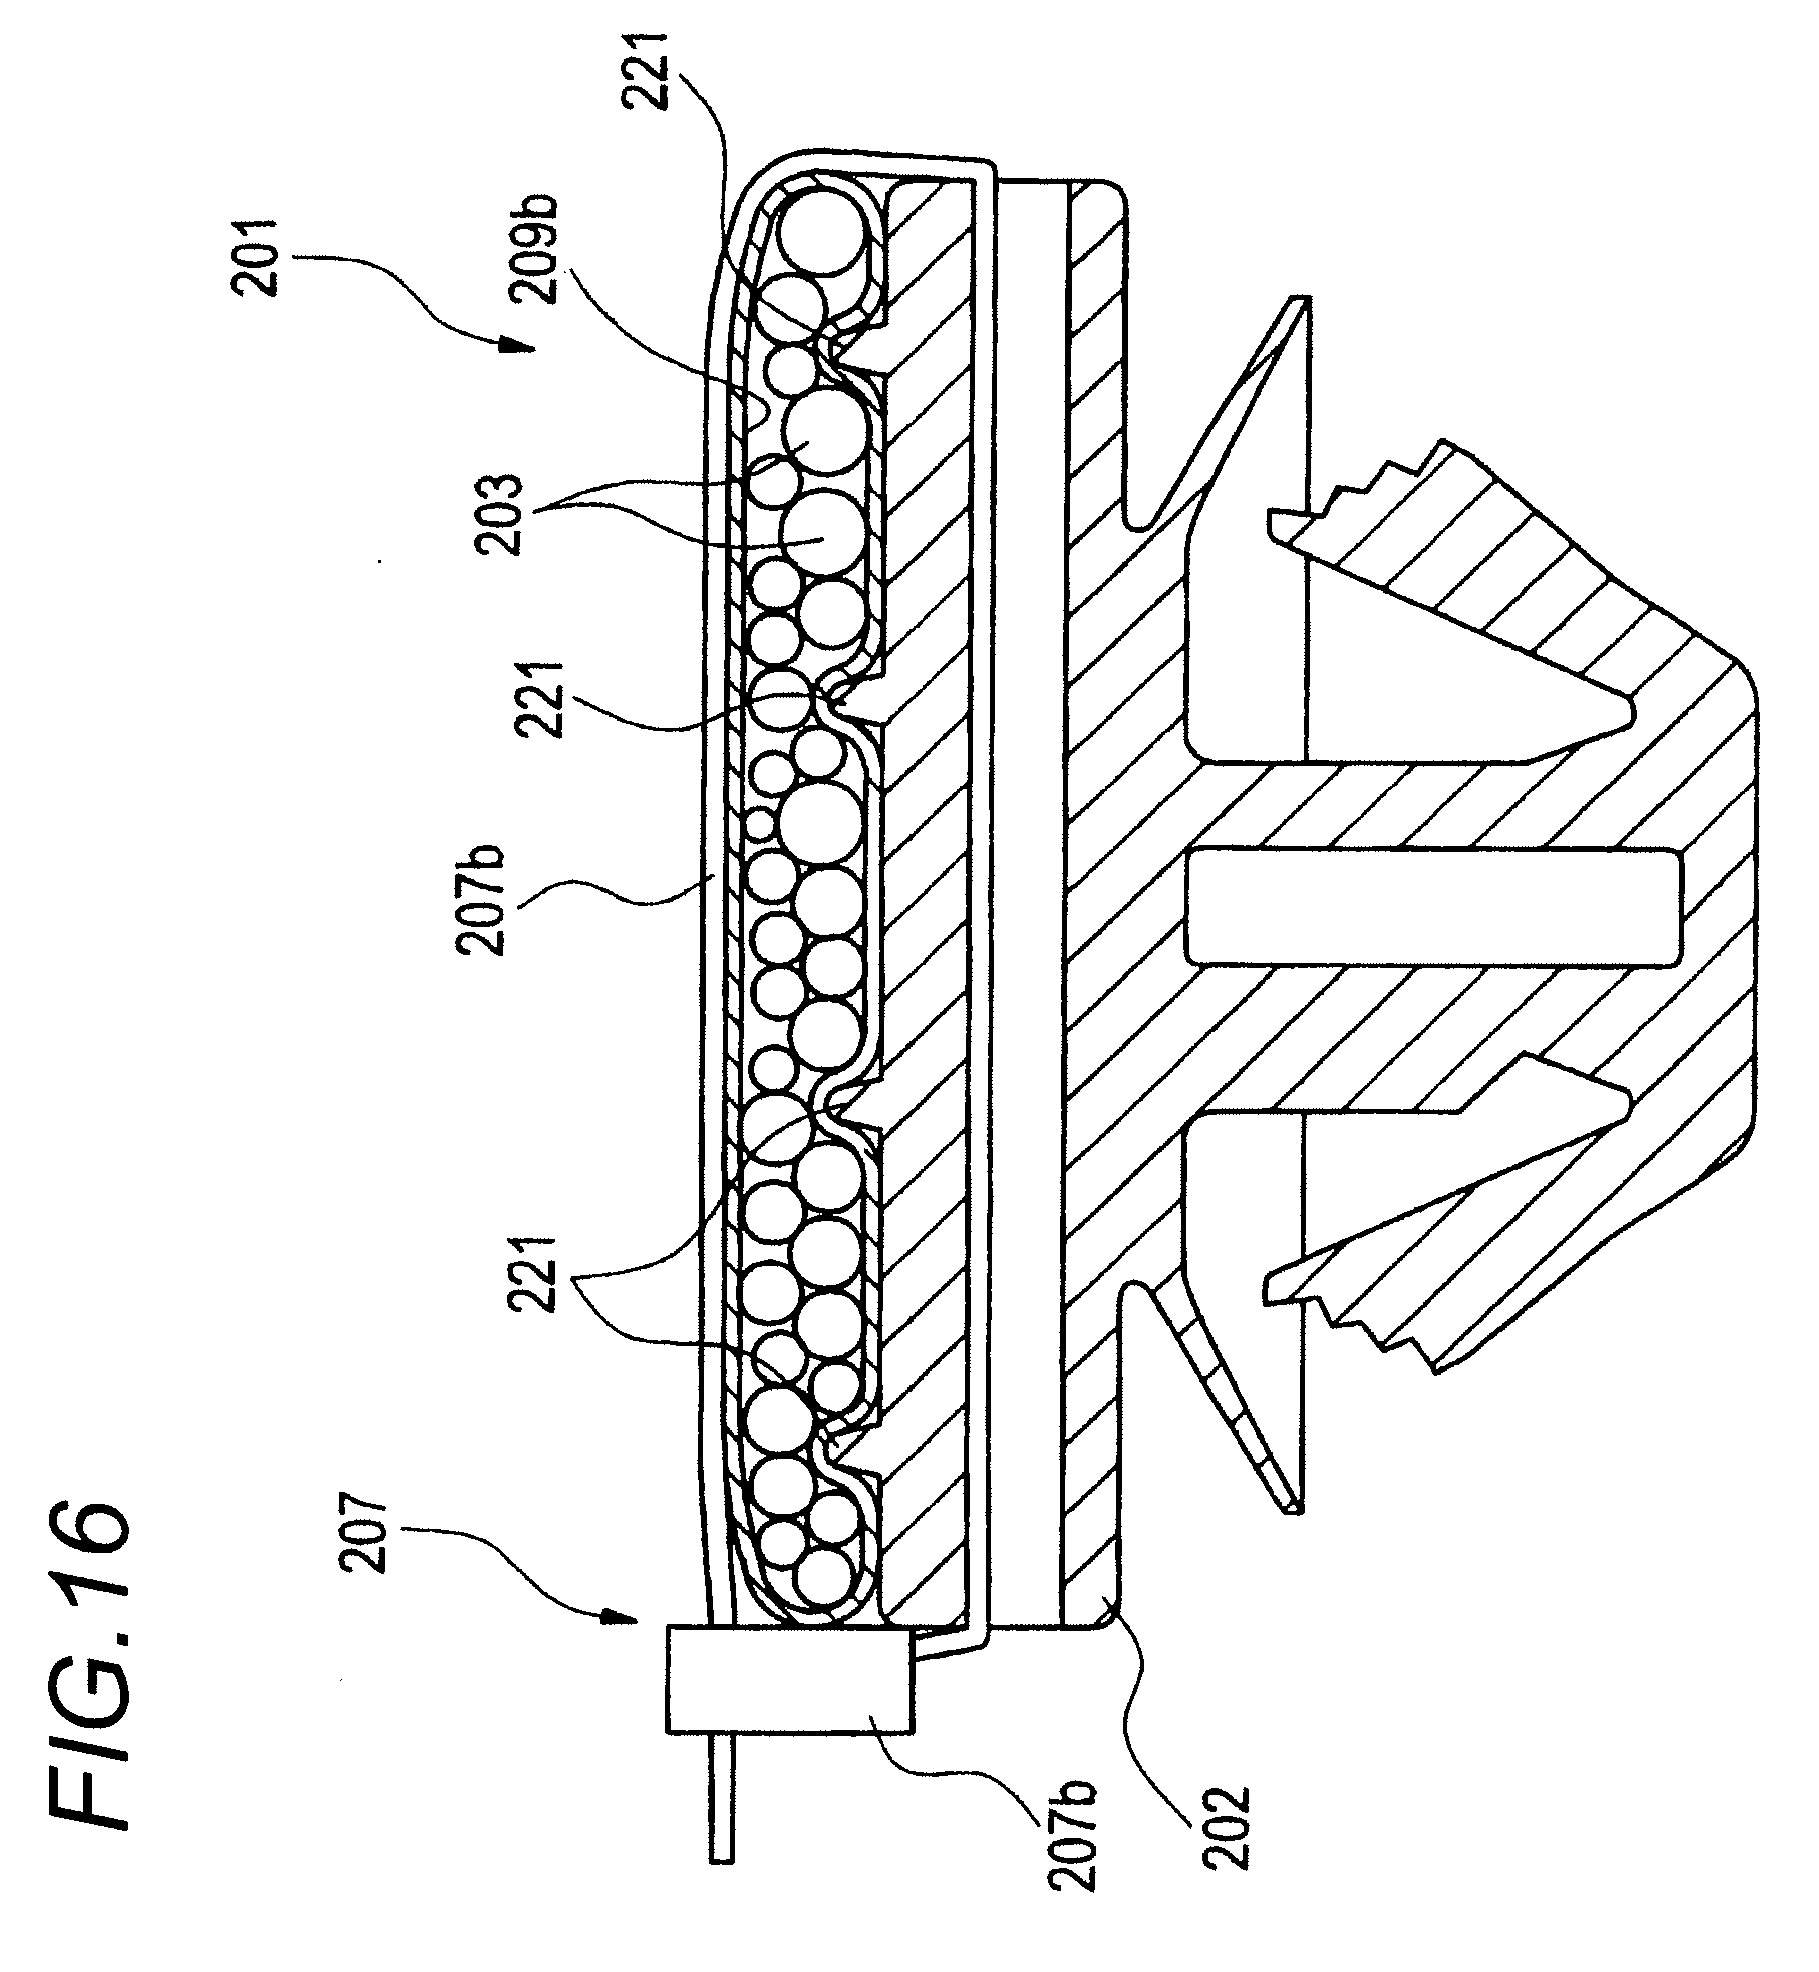 patent ep2302749a1 - wire harness routing structure and wire harness flattening band